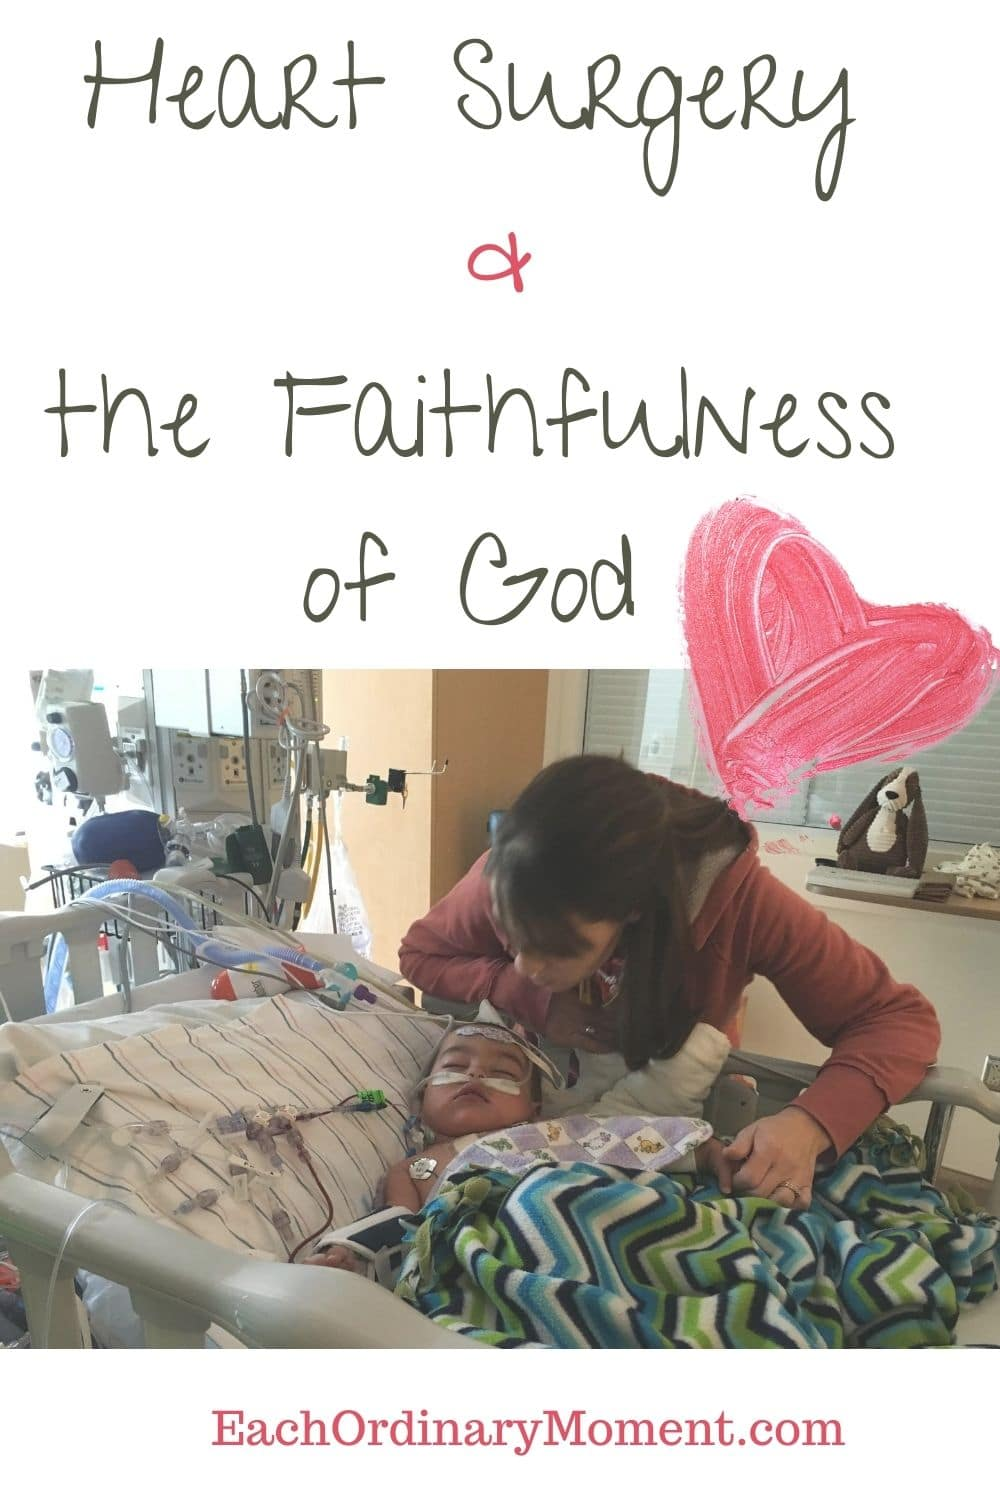 Heart Surgery and the Faithfulness of God